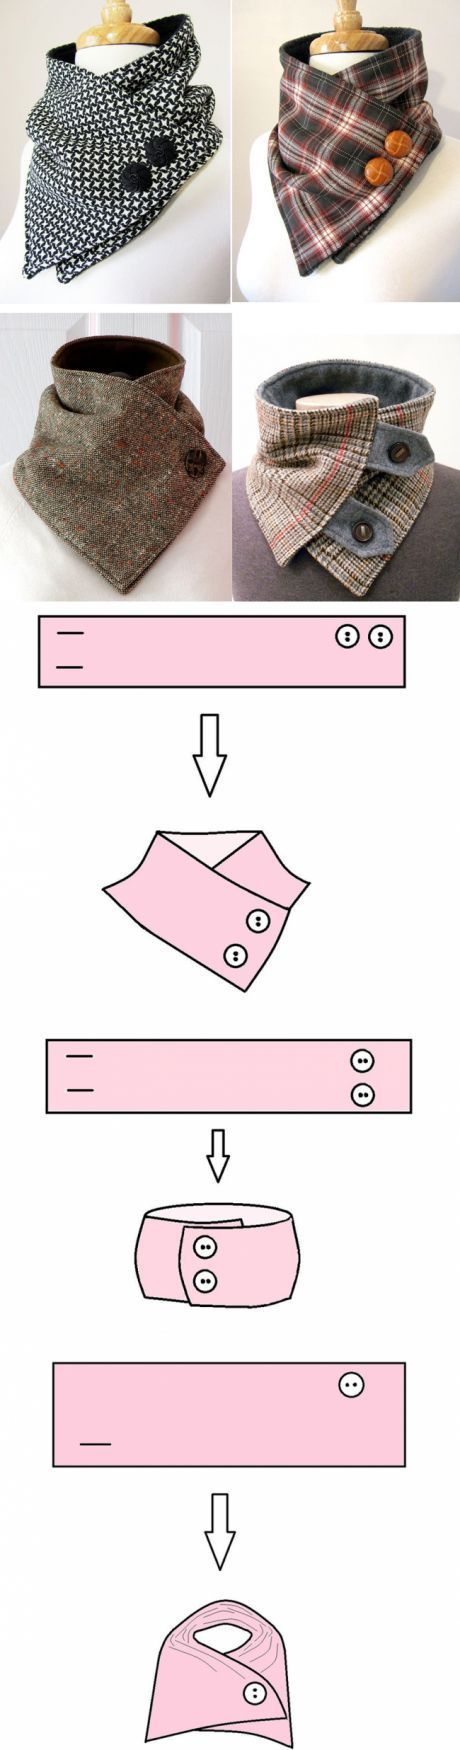 best sewing things images on pinterest sewing ideas patron de